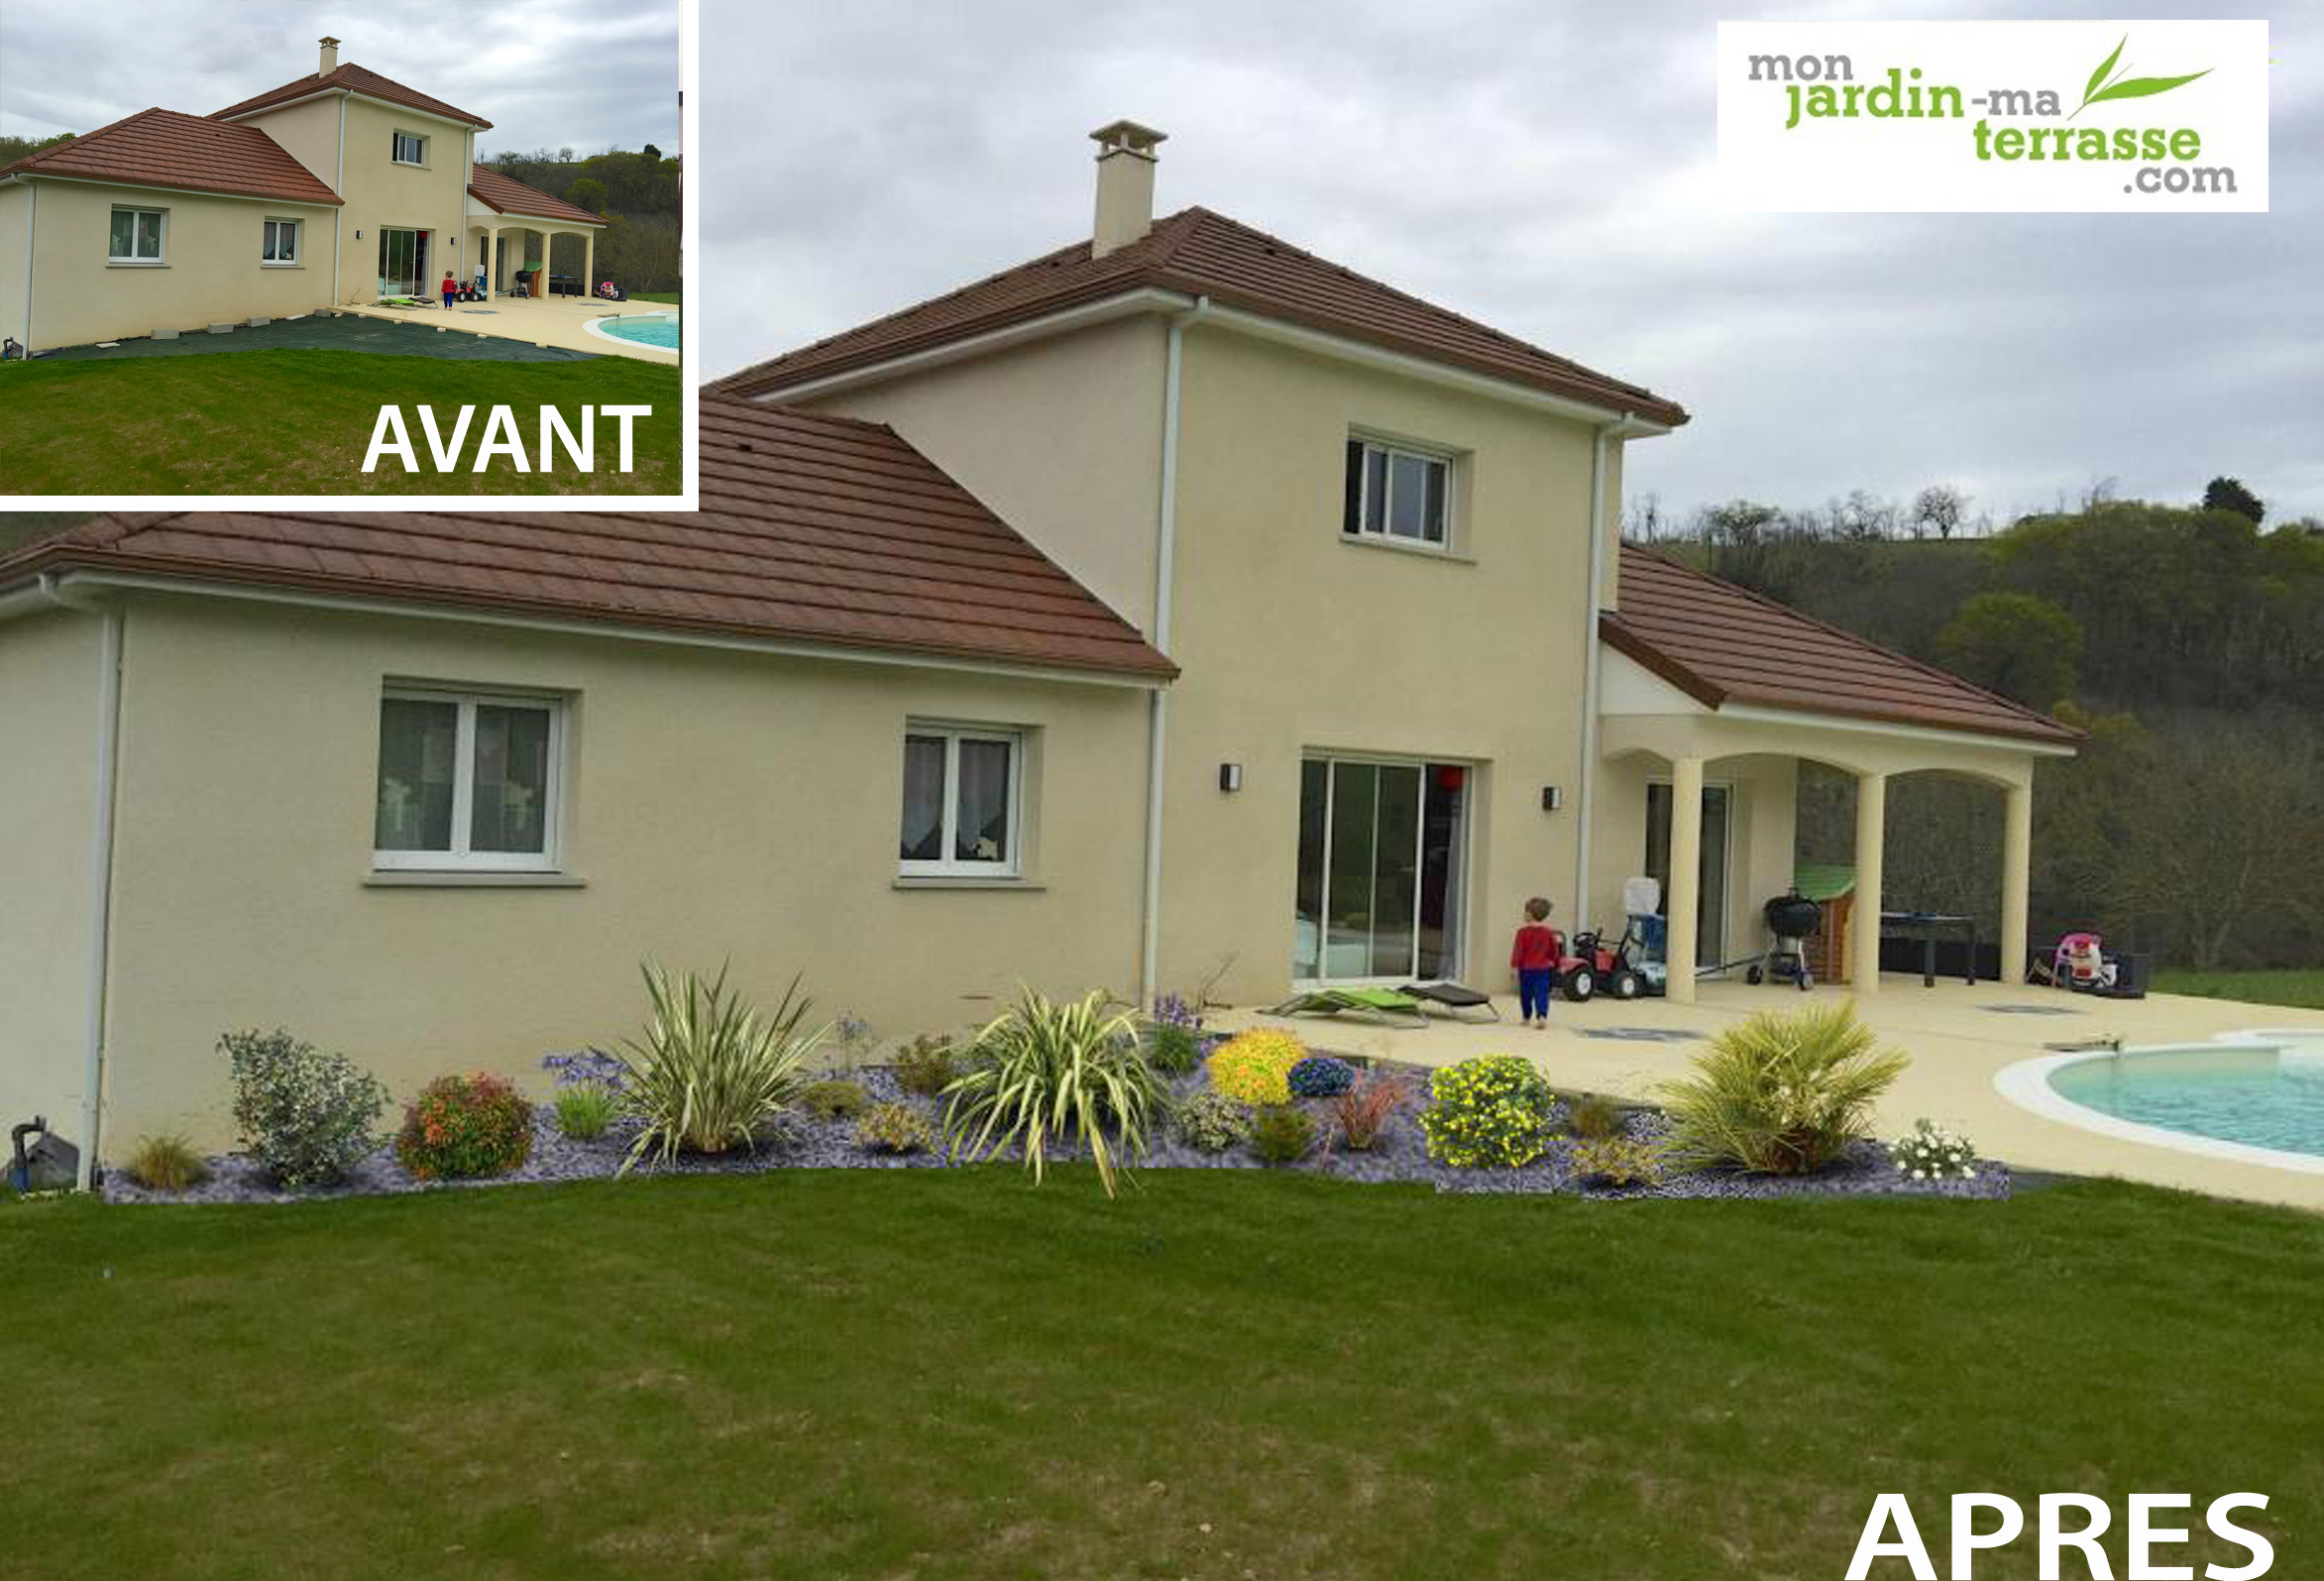 Am nagement ext rieur devant une maison monjardin for Amenagement jardin maison